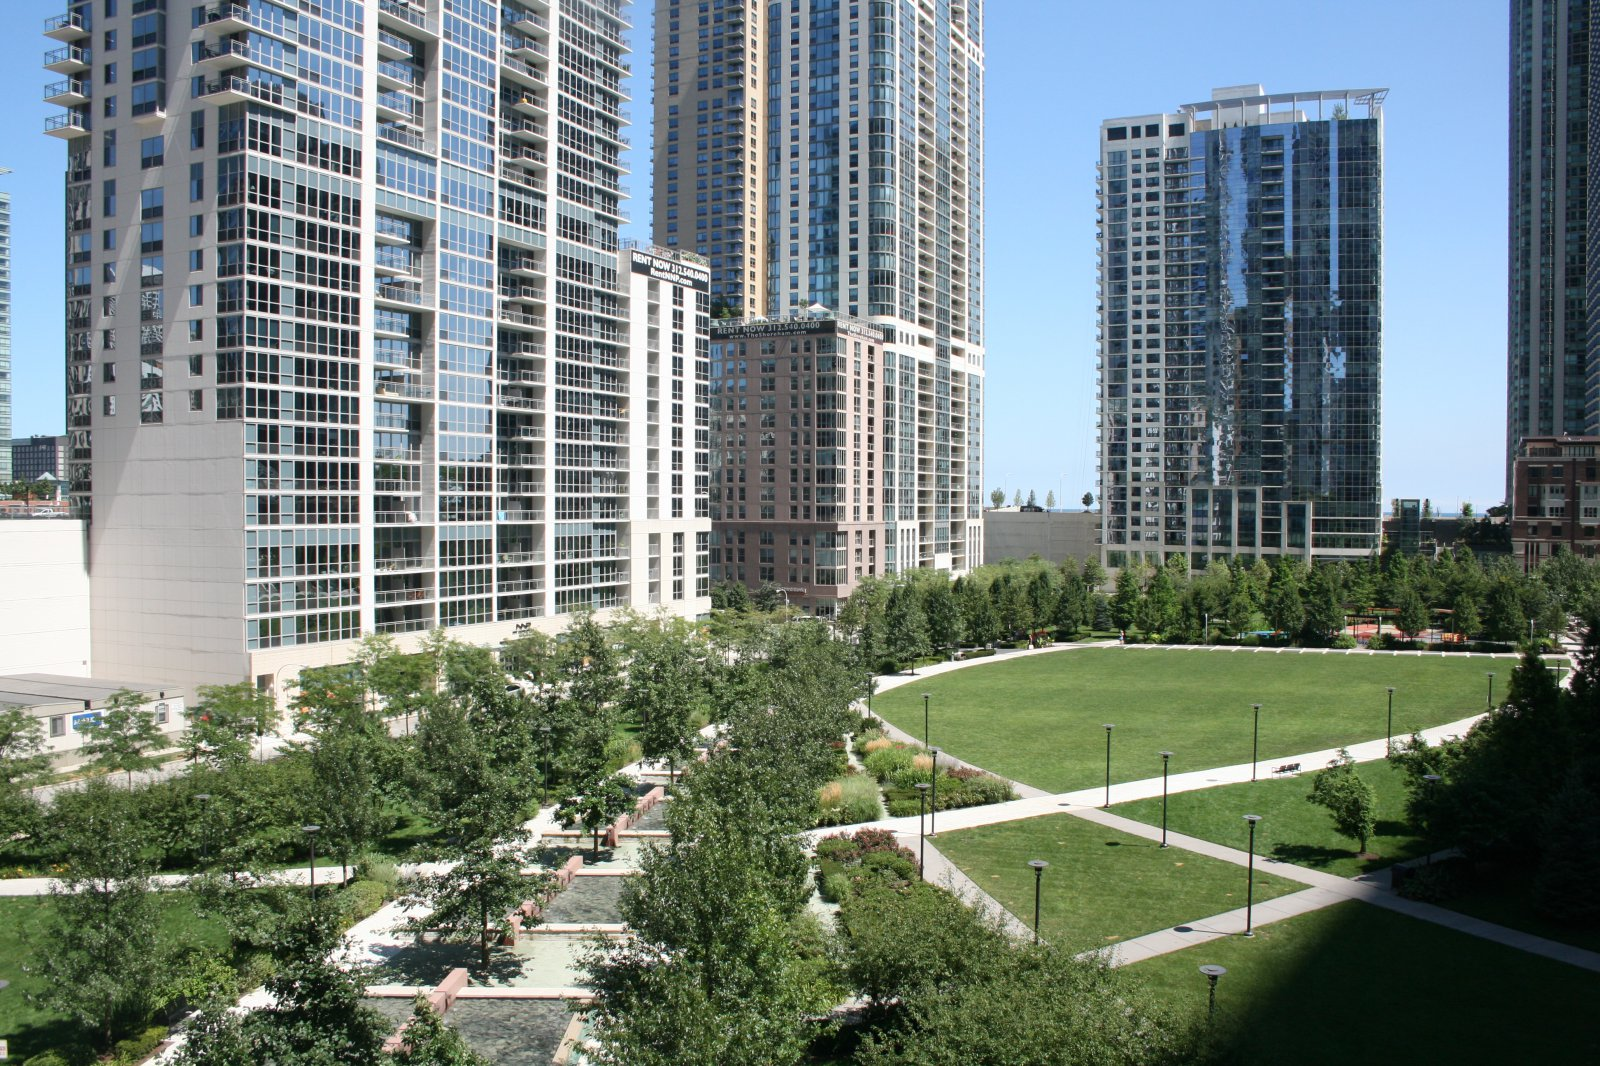 Lake Shore East Park